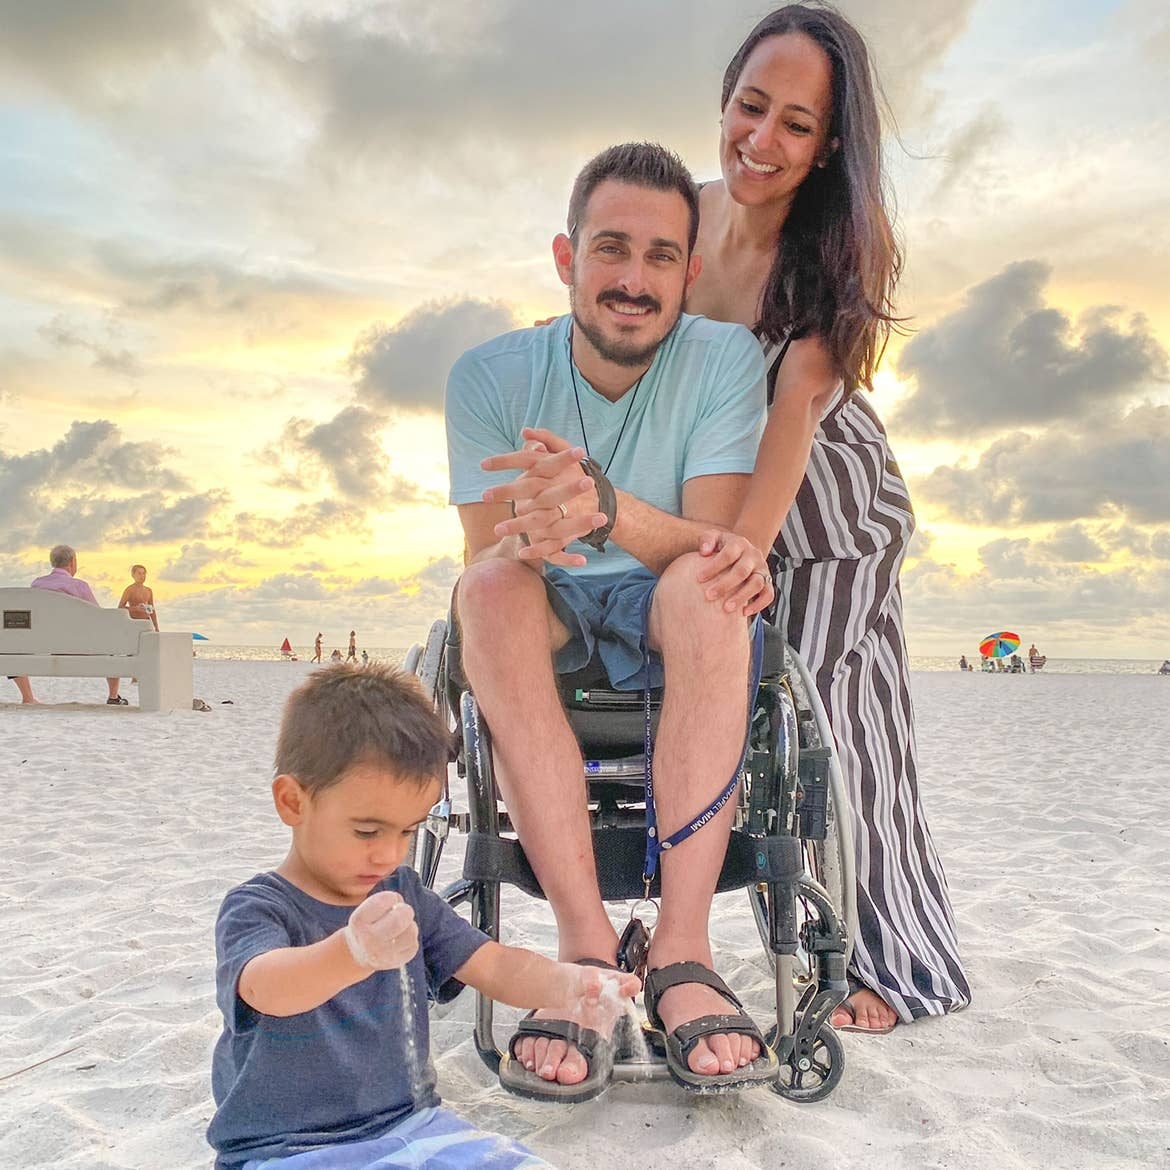 Author, Danny Pitaluga (middle), his wife, Val (right) and son, Joey (left), pose on a white sandy beach with a cloudy sunset behind them.